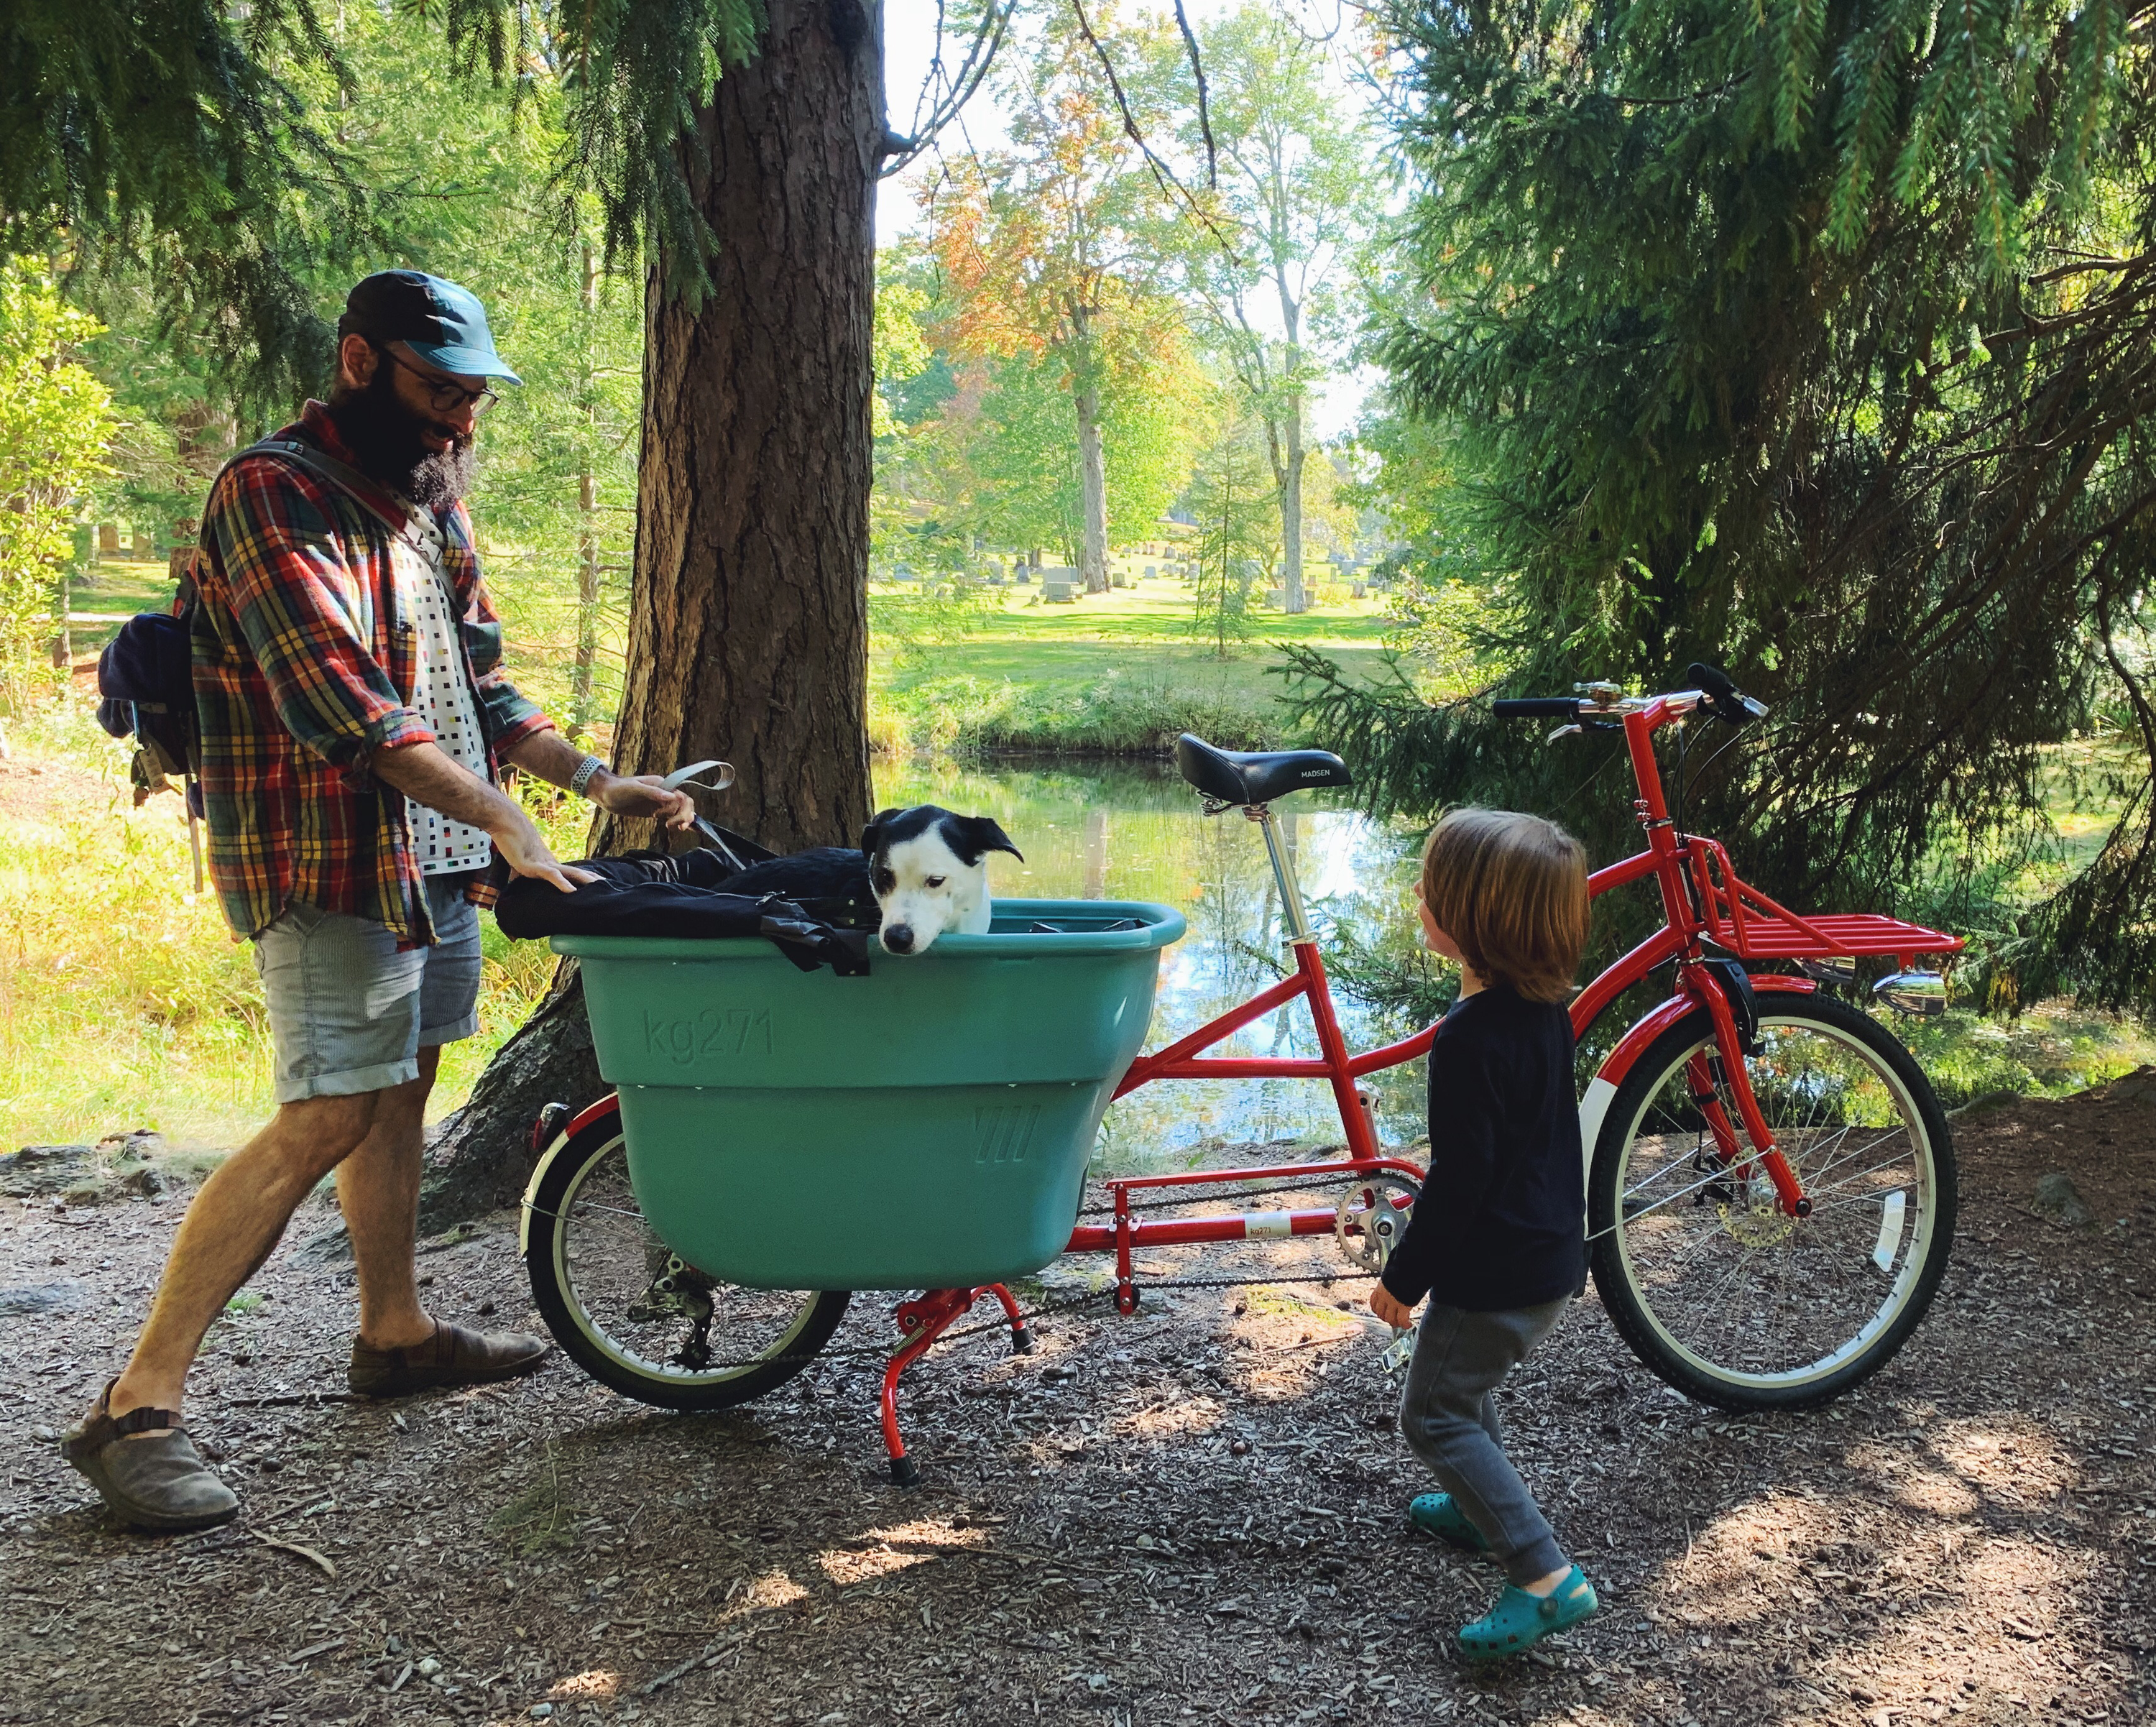 Bearded man and red headed kid stand around a cargo bike. A dog is in the bike. The dog is not happy.